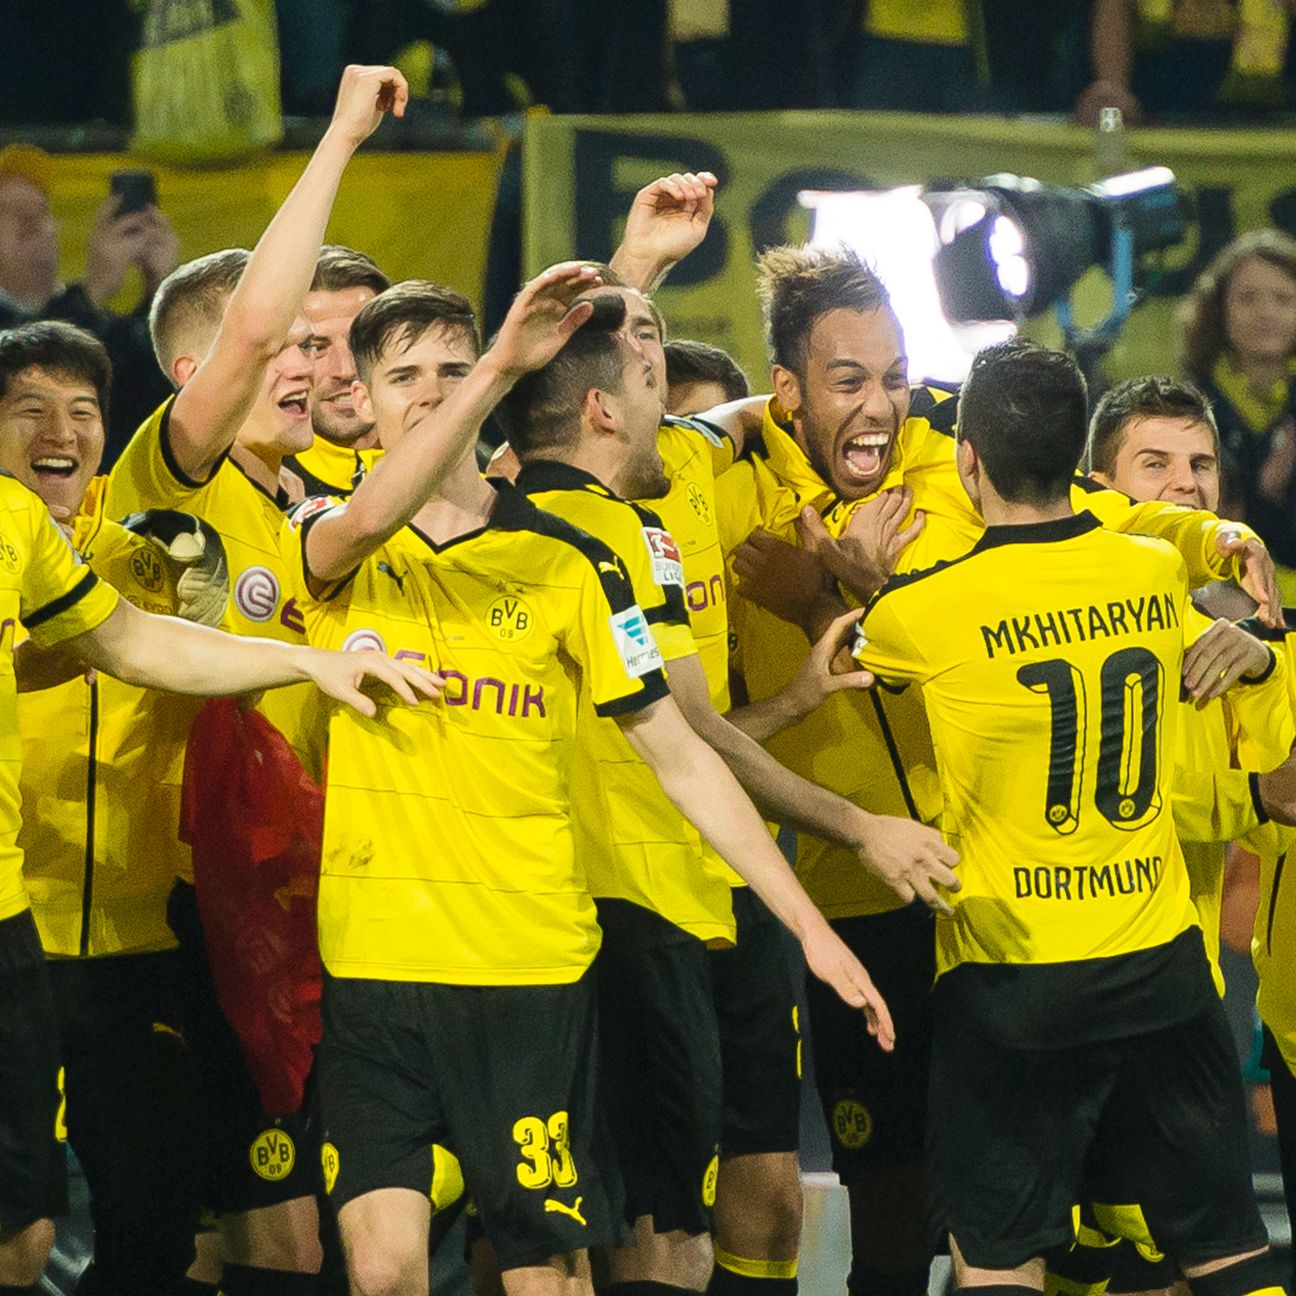 Borussia Dortmund will be looking to complete their Europa League group stage campaign in style vs. PAOK.